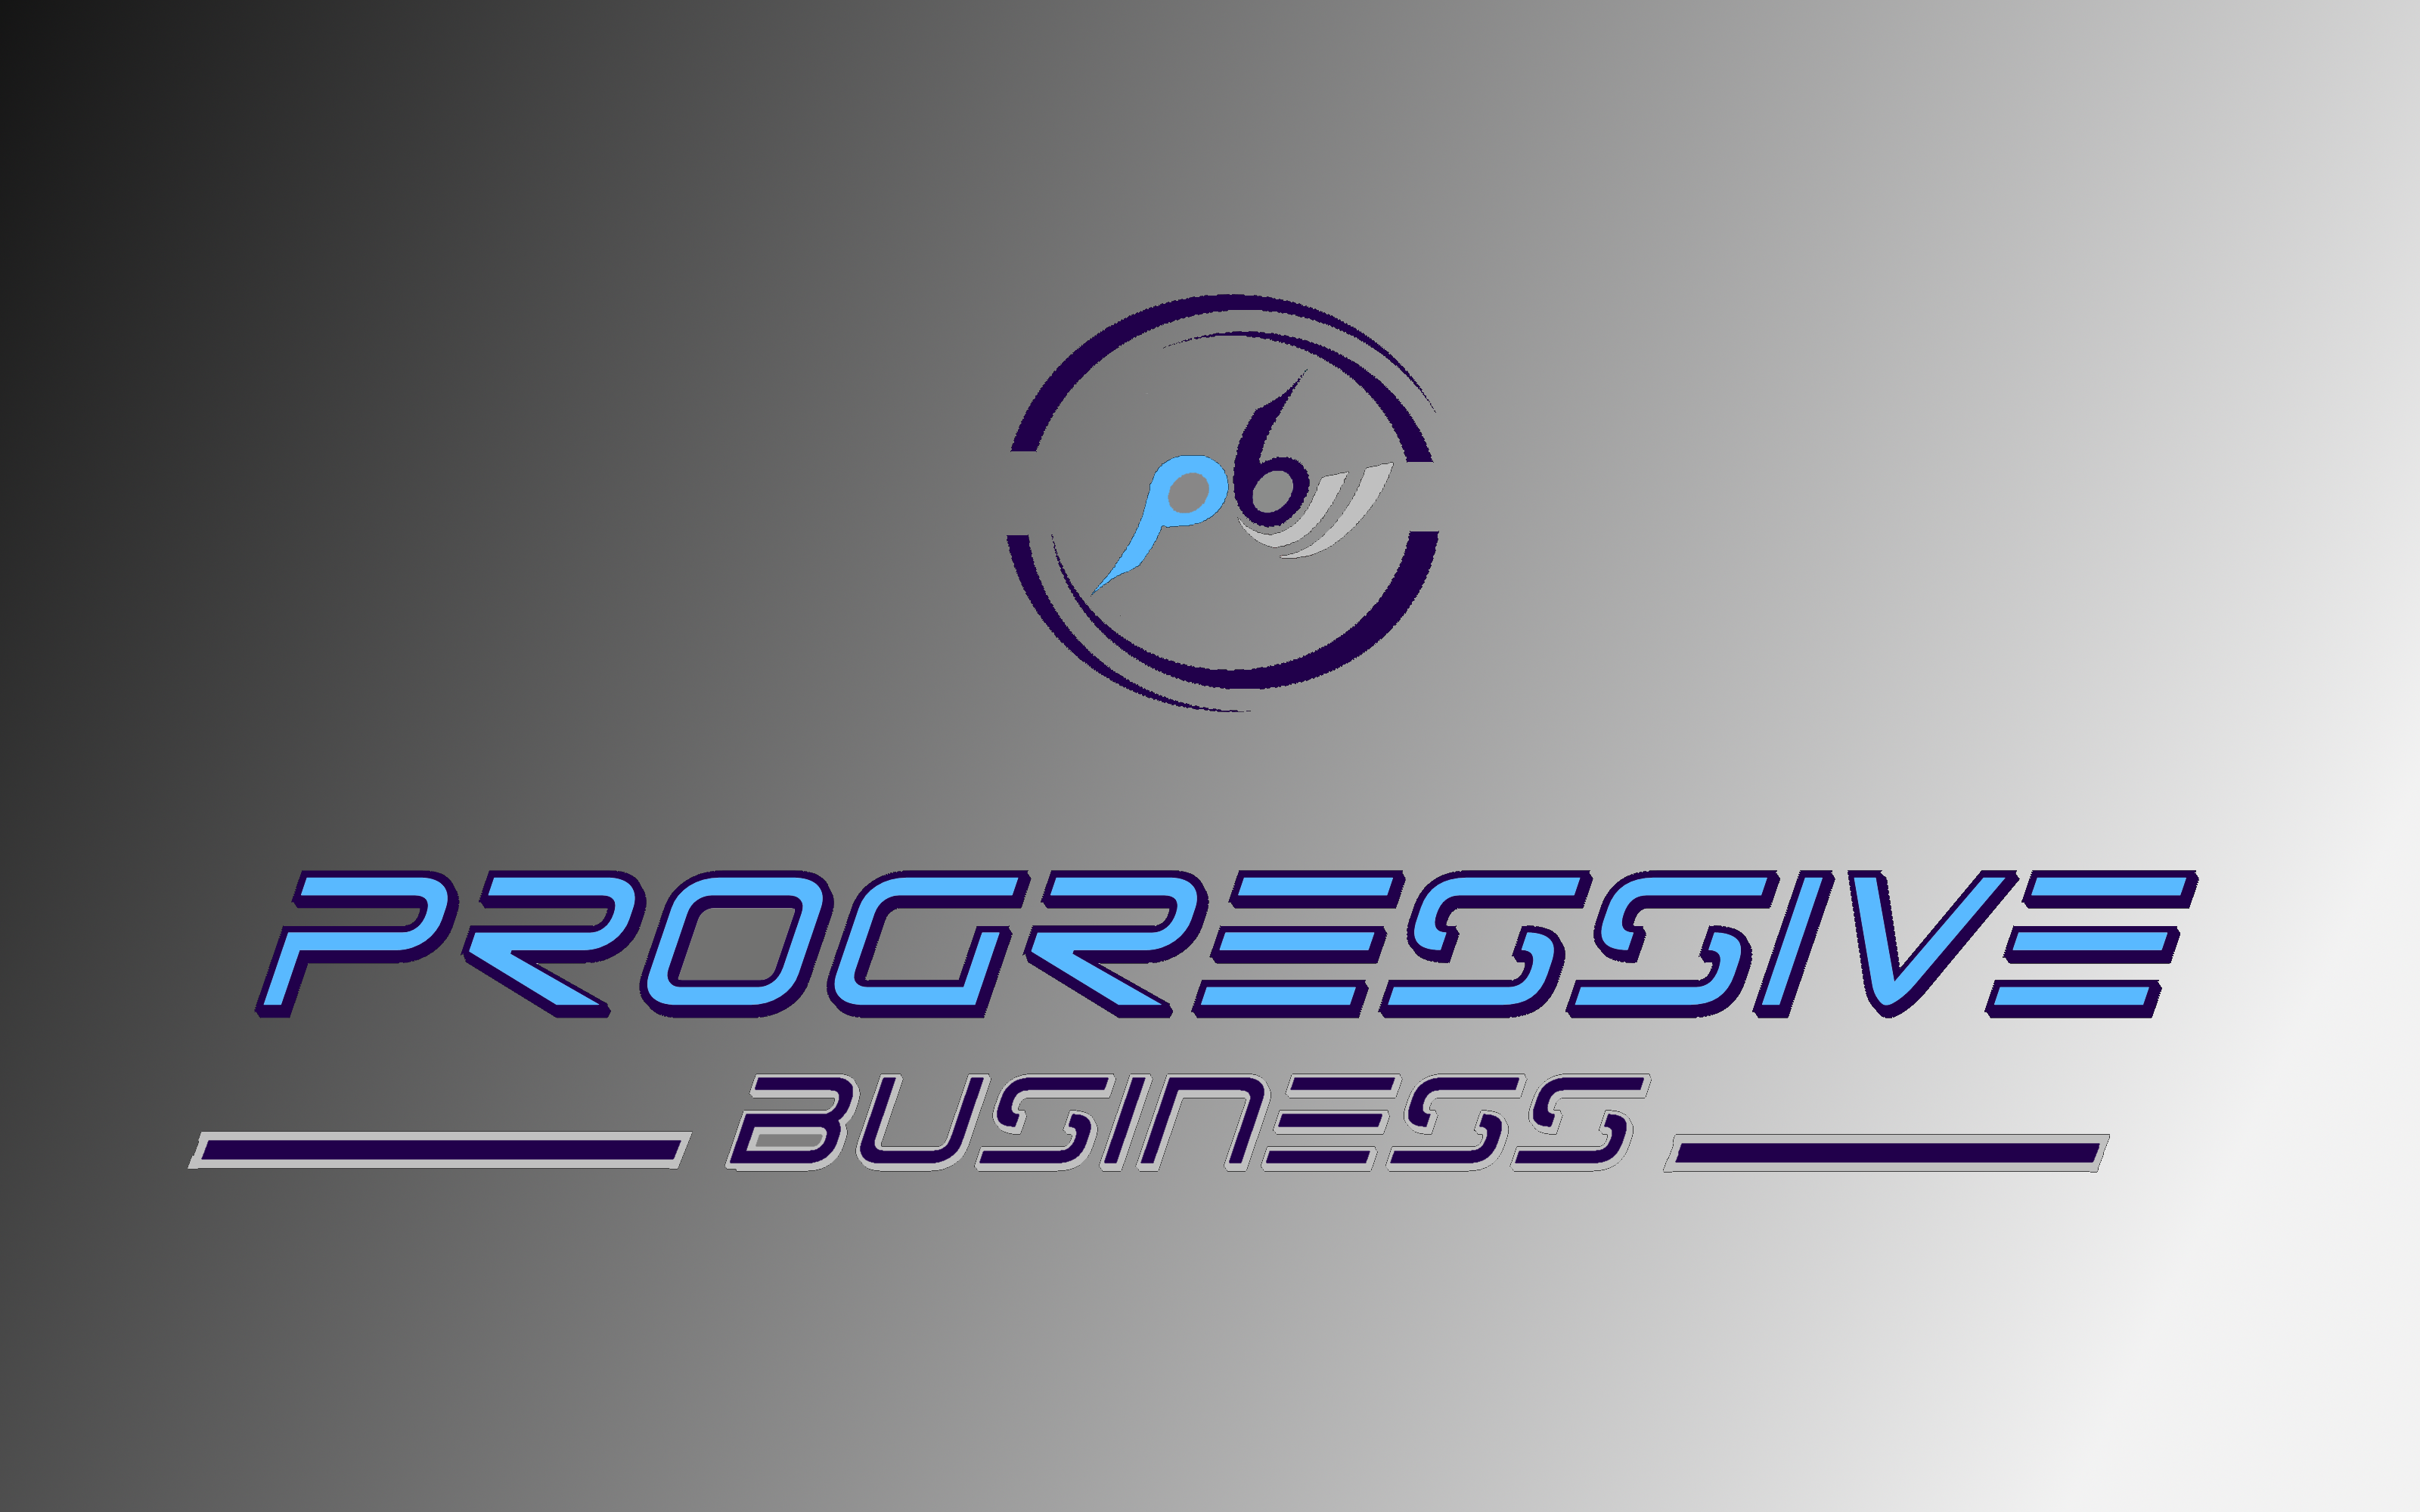 Logo Design by Roberto Bassi - Entry No. 87 in the Logo Design Contest Captivating Logo Design for Progressive Business.